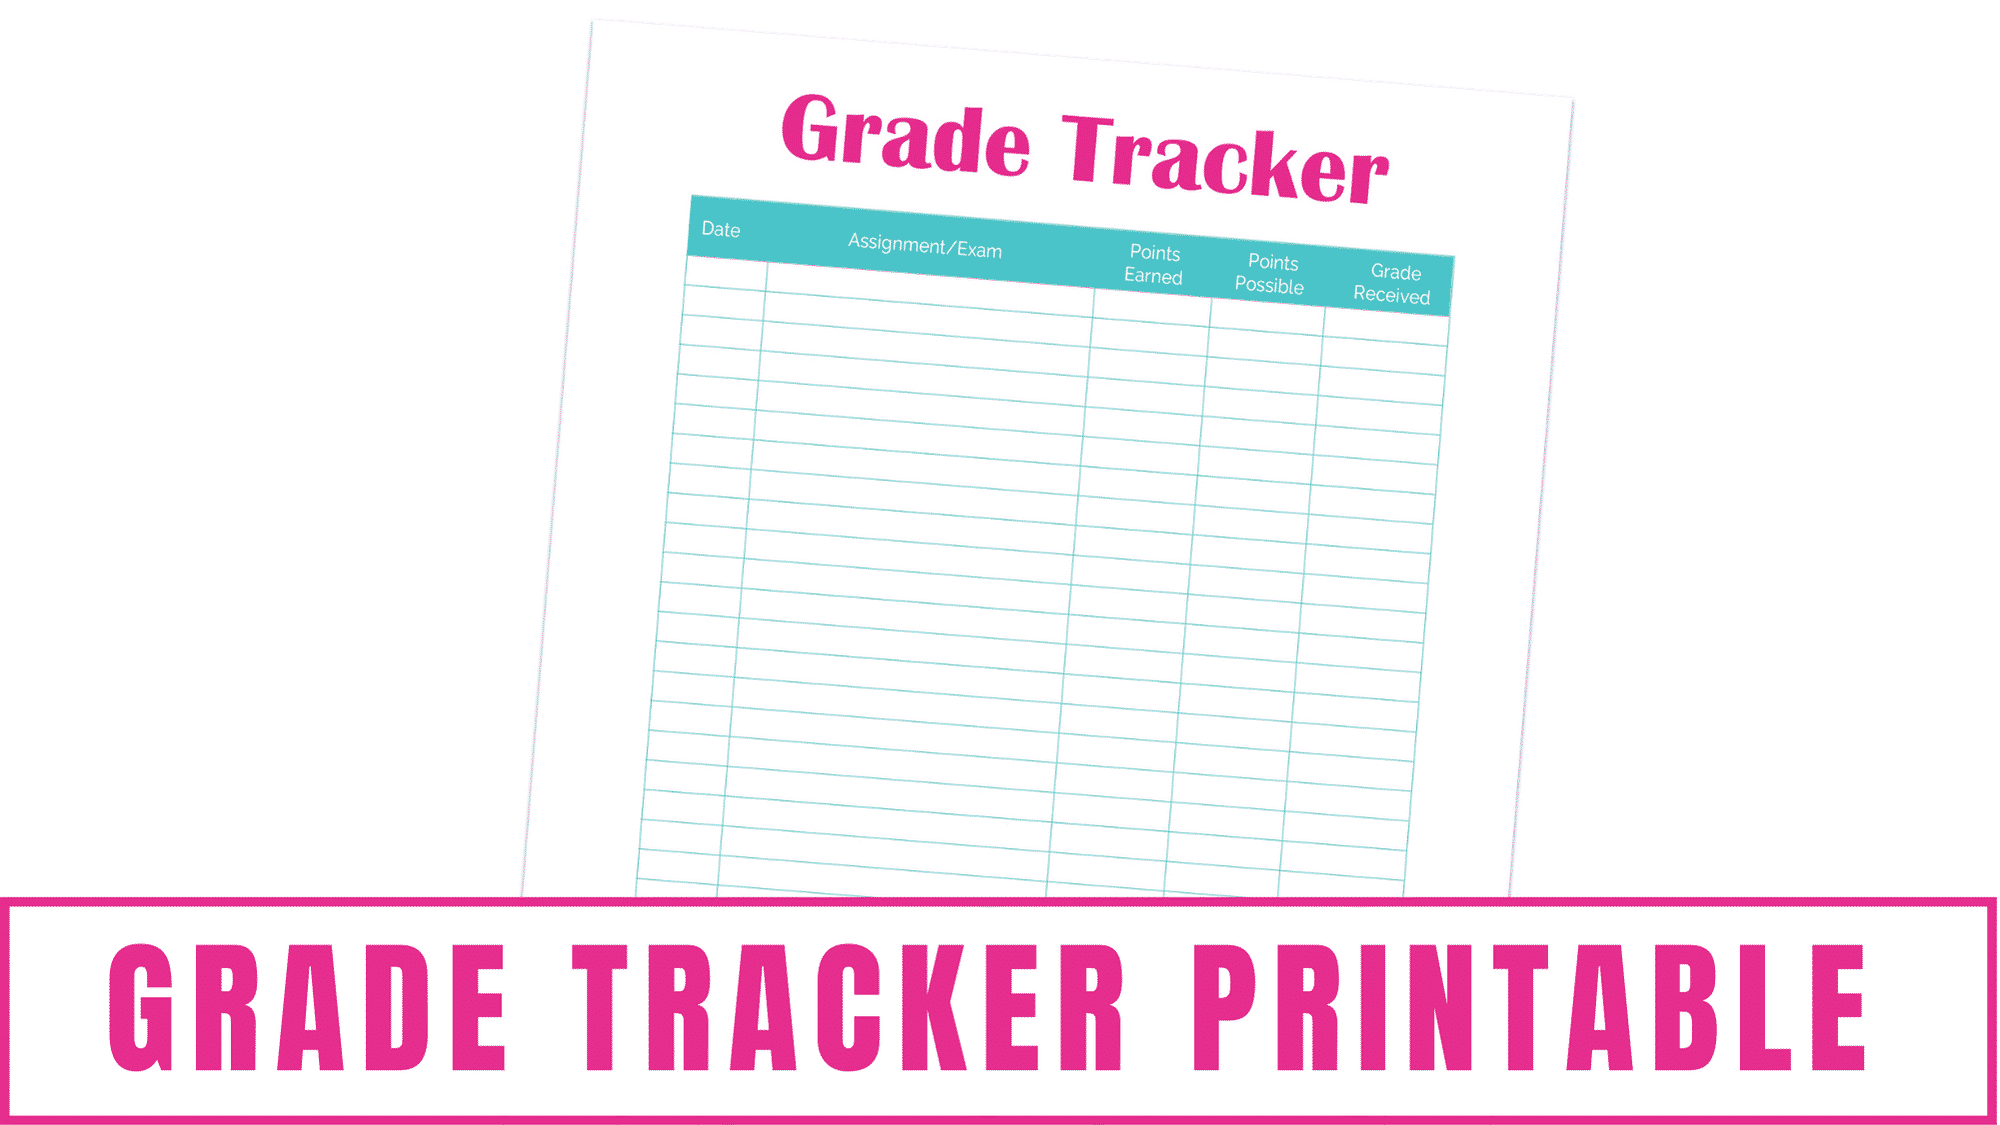 Do you or your student want to monitor their grades in school? The grade tracker printable included in the 13-page student planner printable lets you easily record your scores.